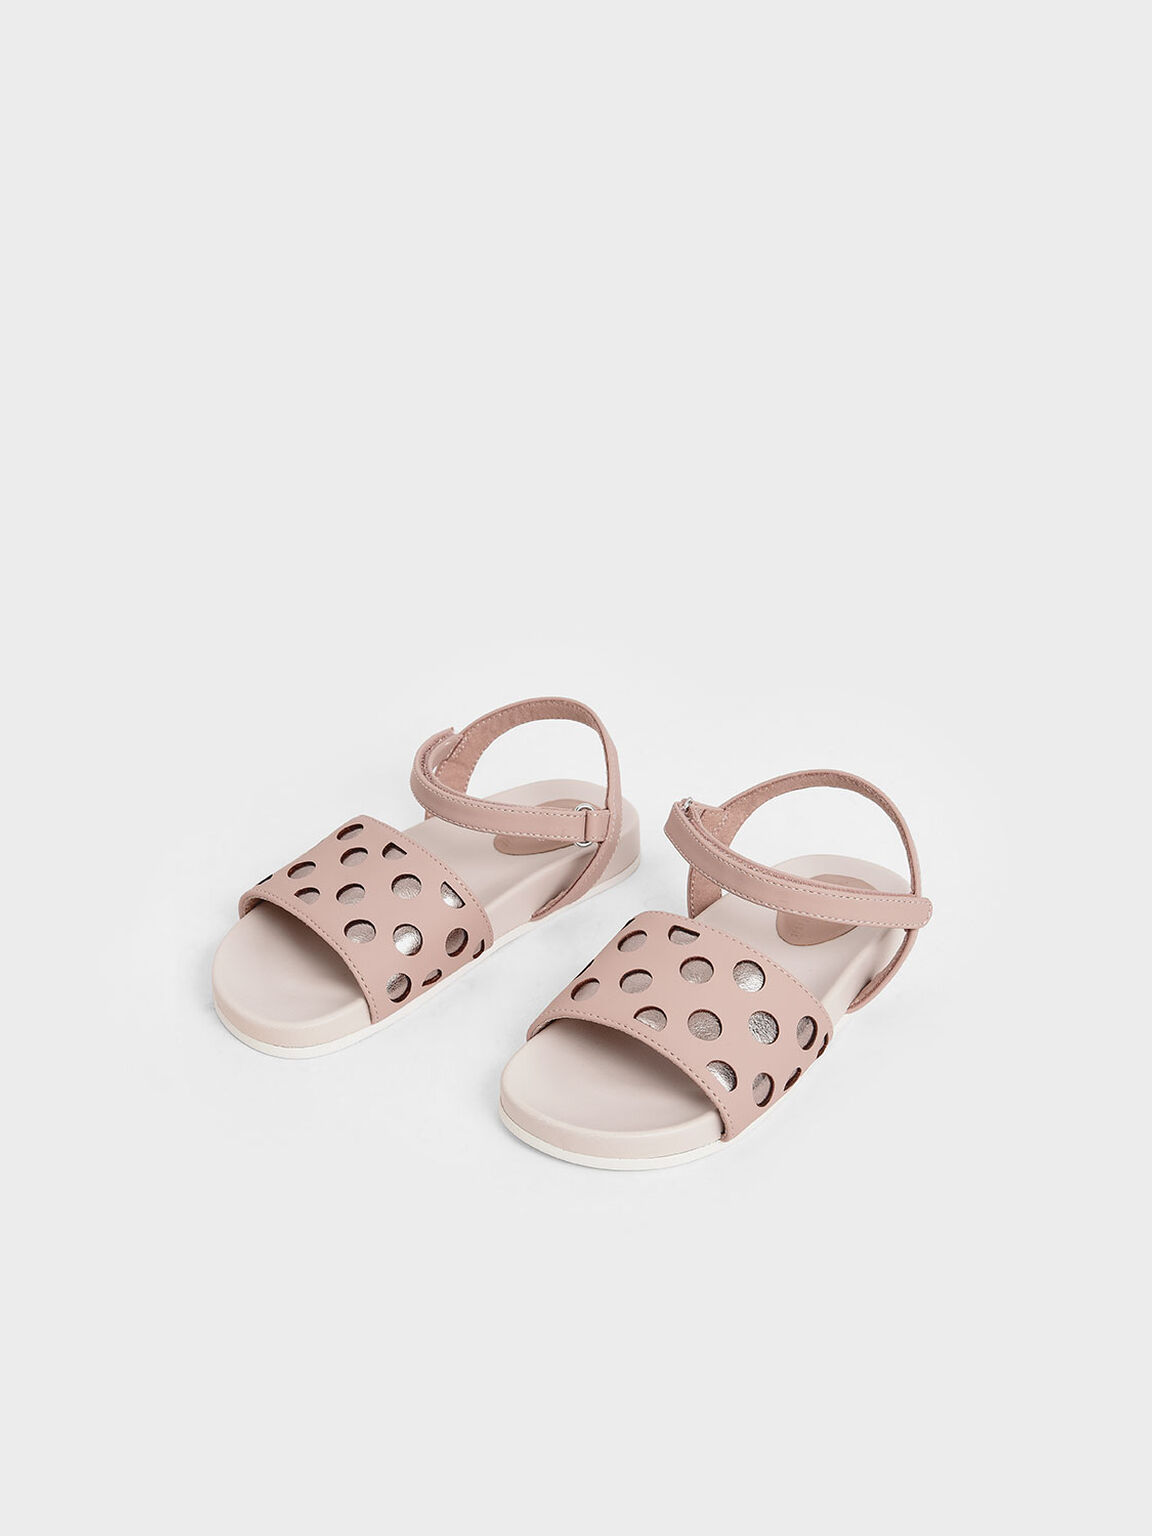 Girls' Two-Tone Laser-Cut Sandals, Nude, hi-res